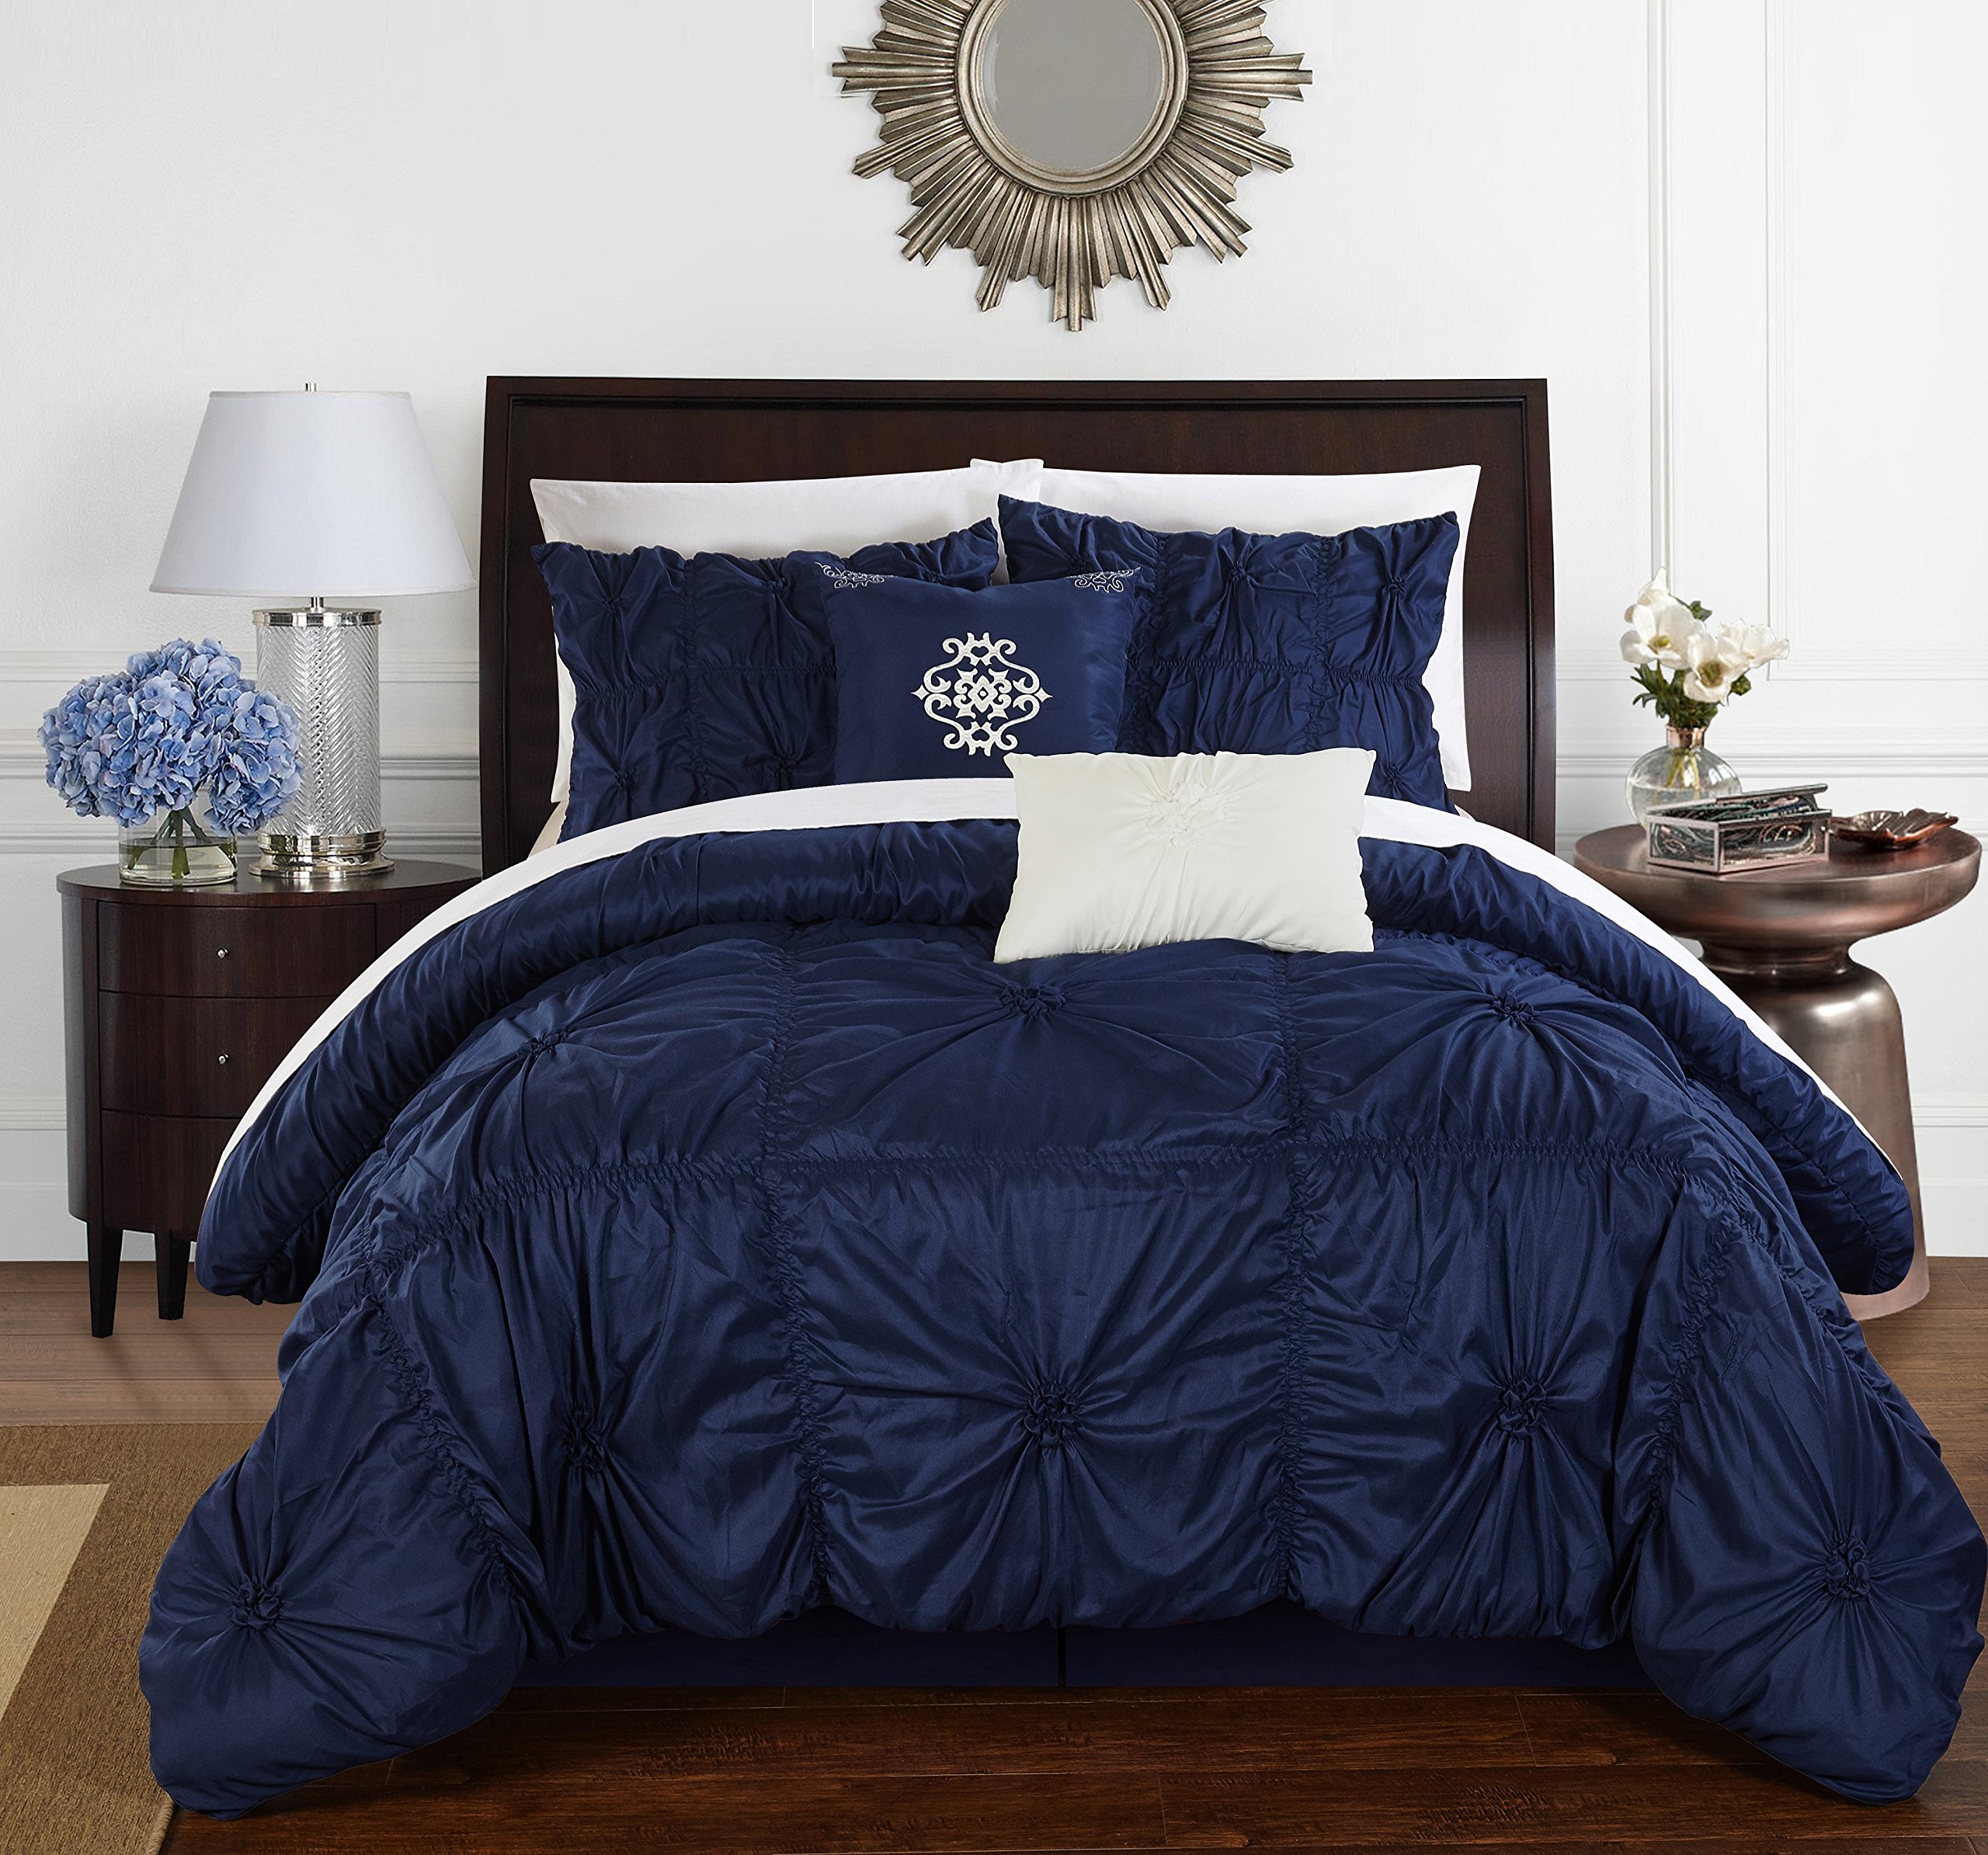 Chic Home Halpert 6 Piece Comforter Set Floral Pinch Pleated Ruffled Designer Embellished Bedding with Bed Skirt and Decorative Pillows Shams Included, Queen Navy by Chic Home